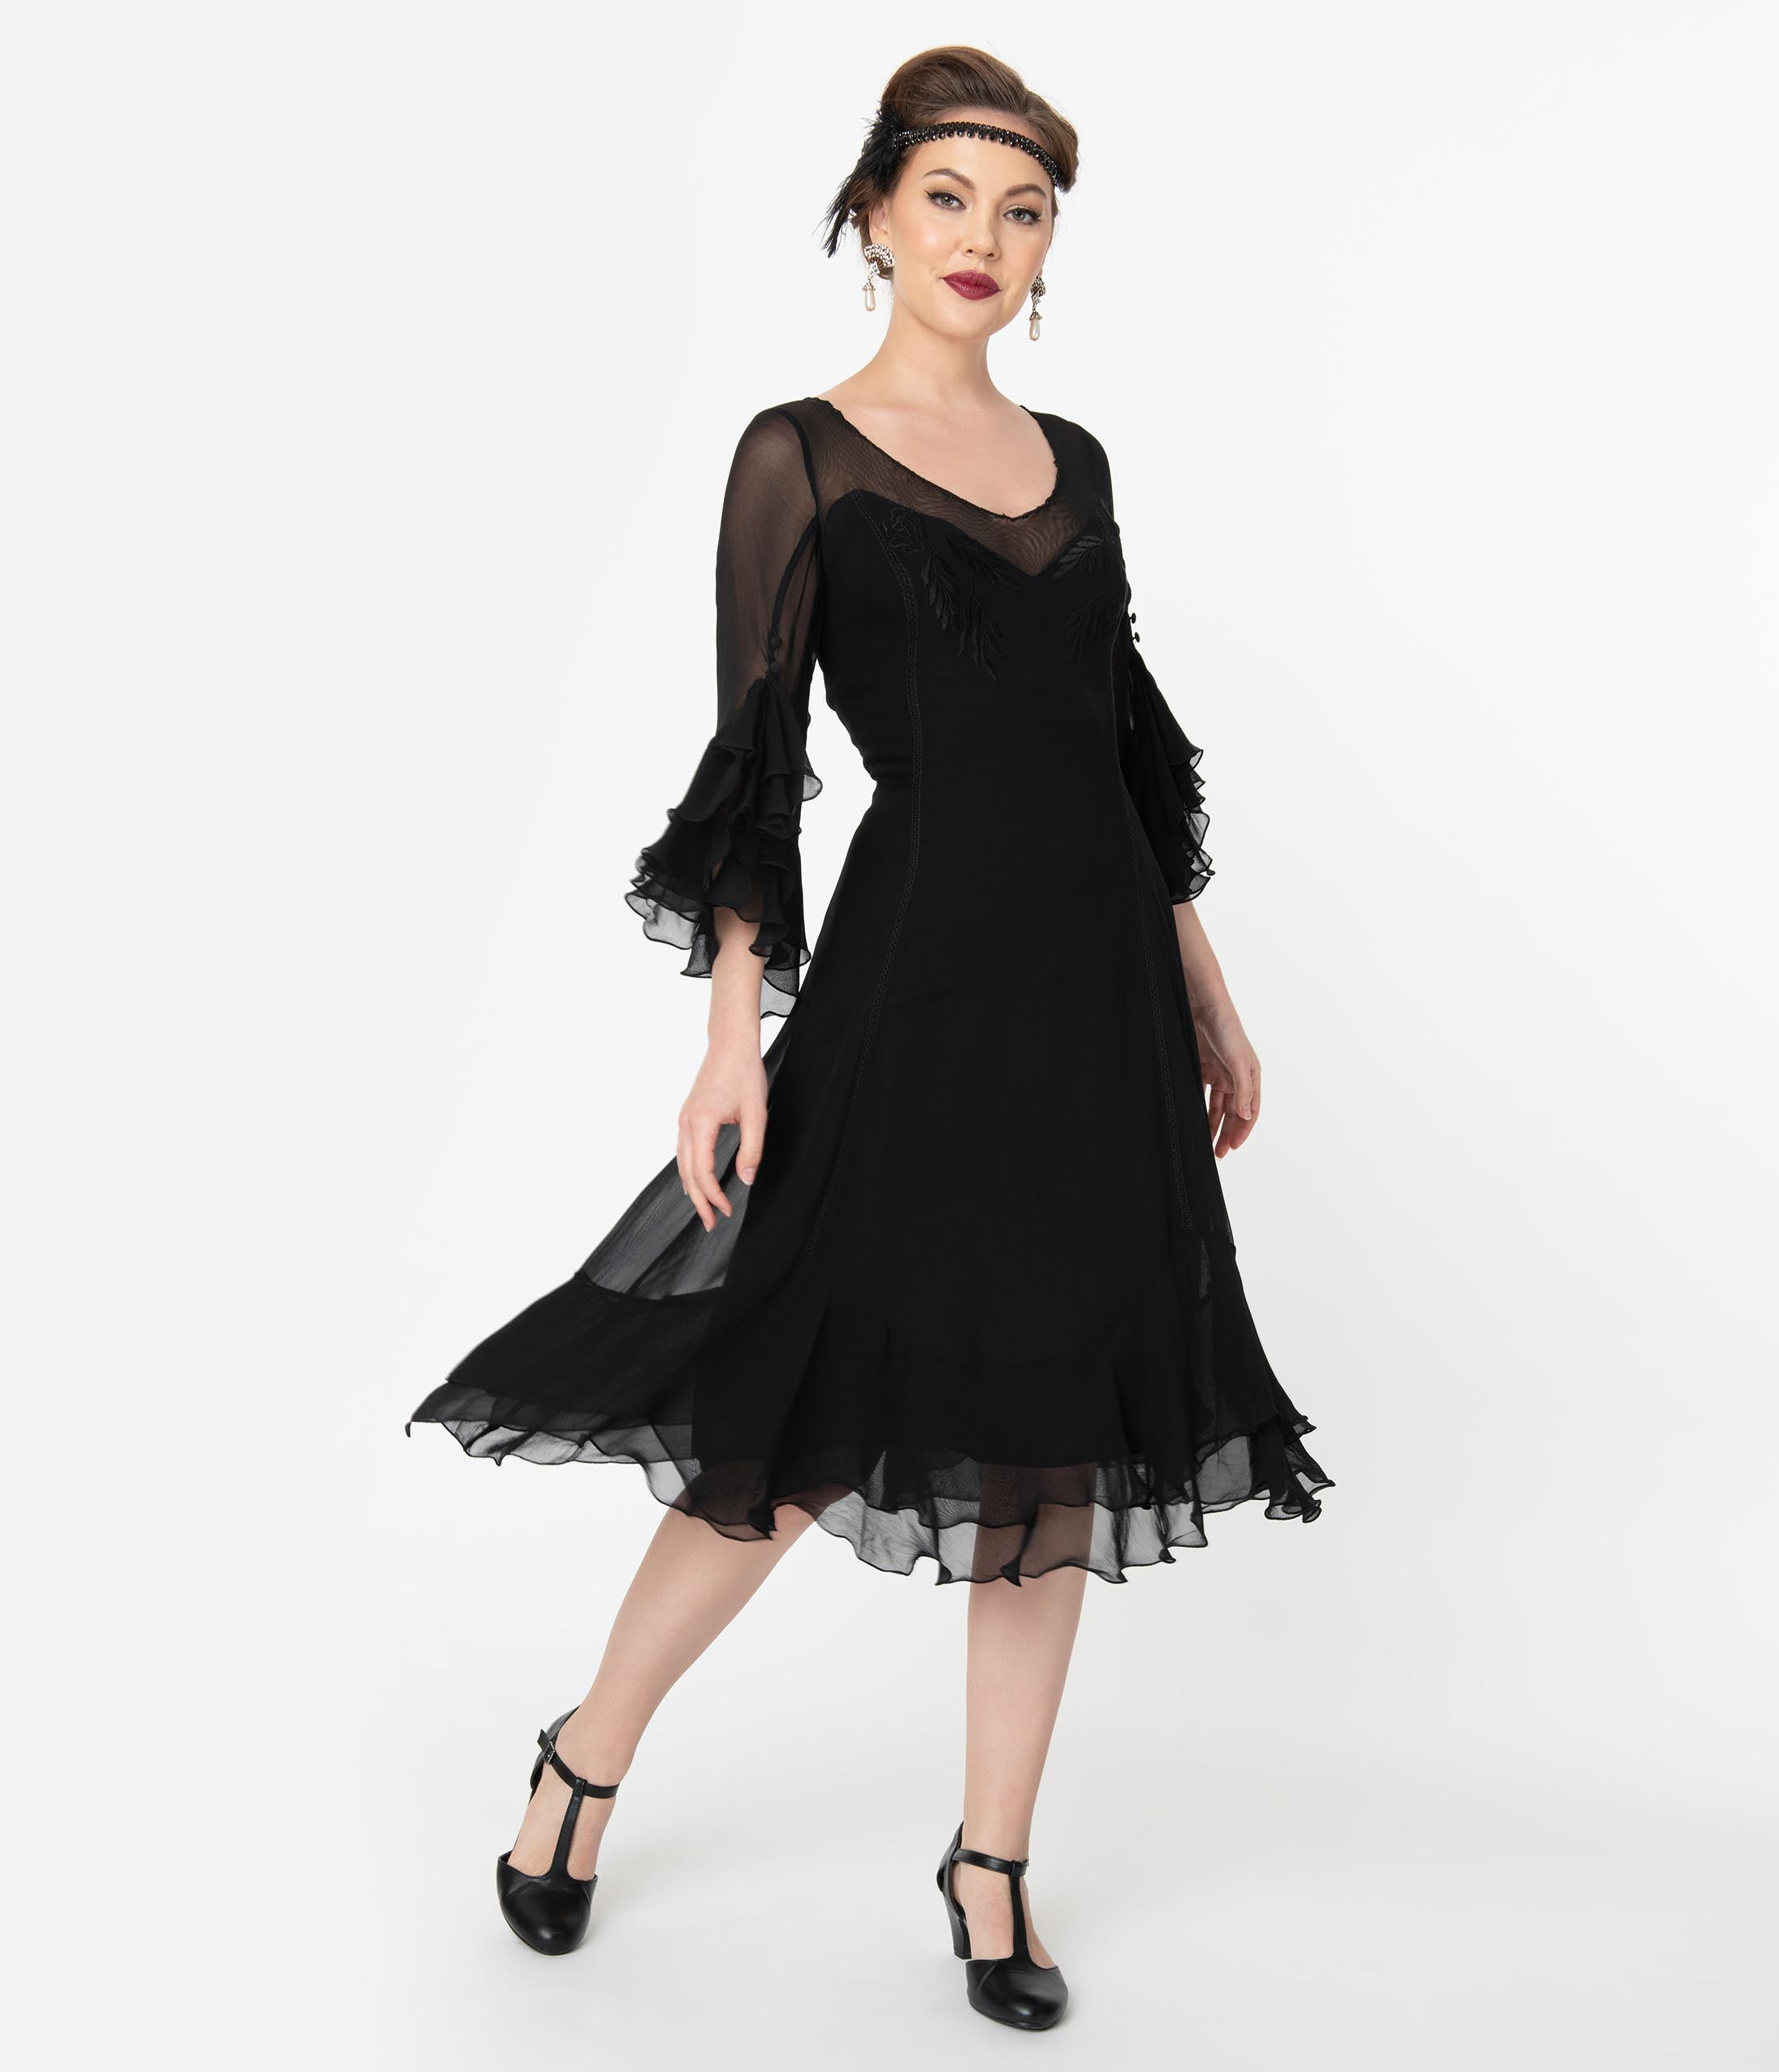 500 Vintage Style Dresses for Sale | Vintage Inspired Dresses 1920S Style Black Mesh Ruffle Leonardo Midi Dress $218.00 AT vintagedancer.com